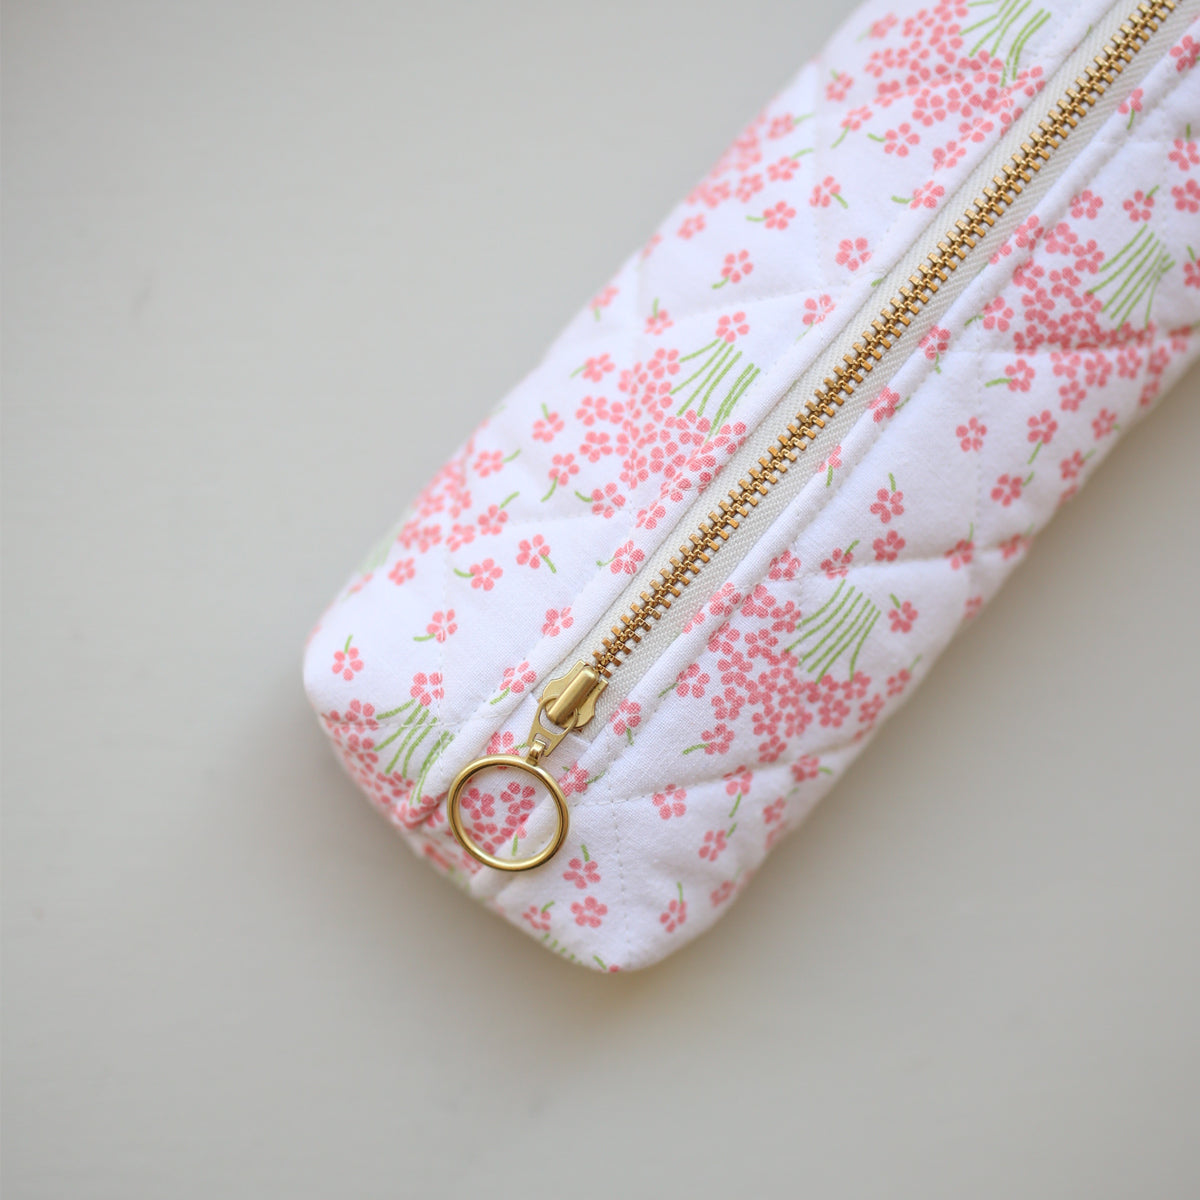 PEN CASE // PINK FLOWERS